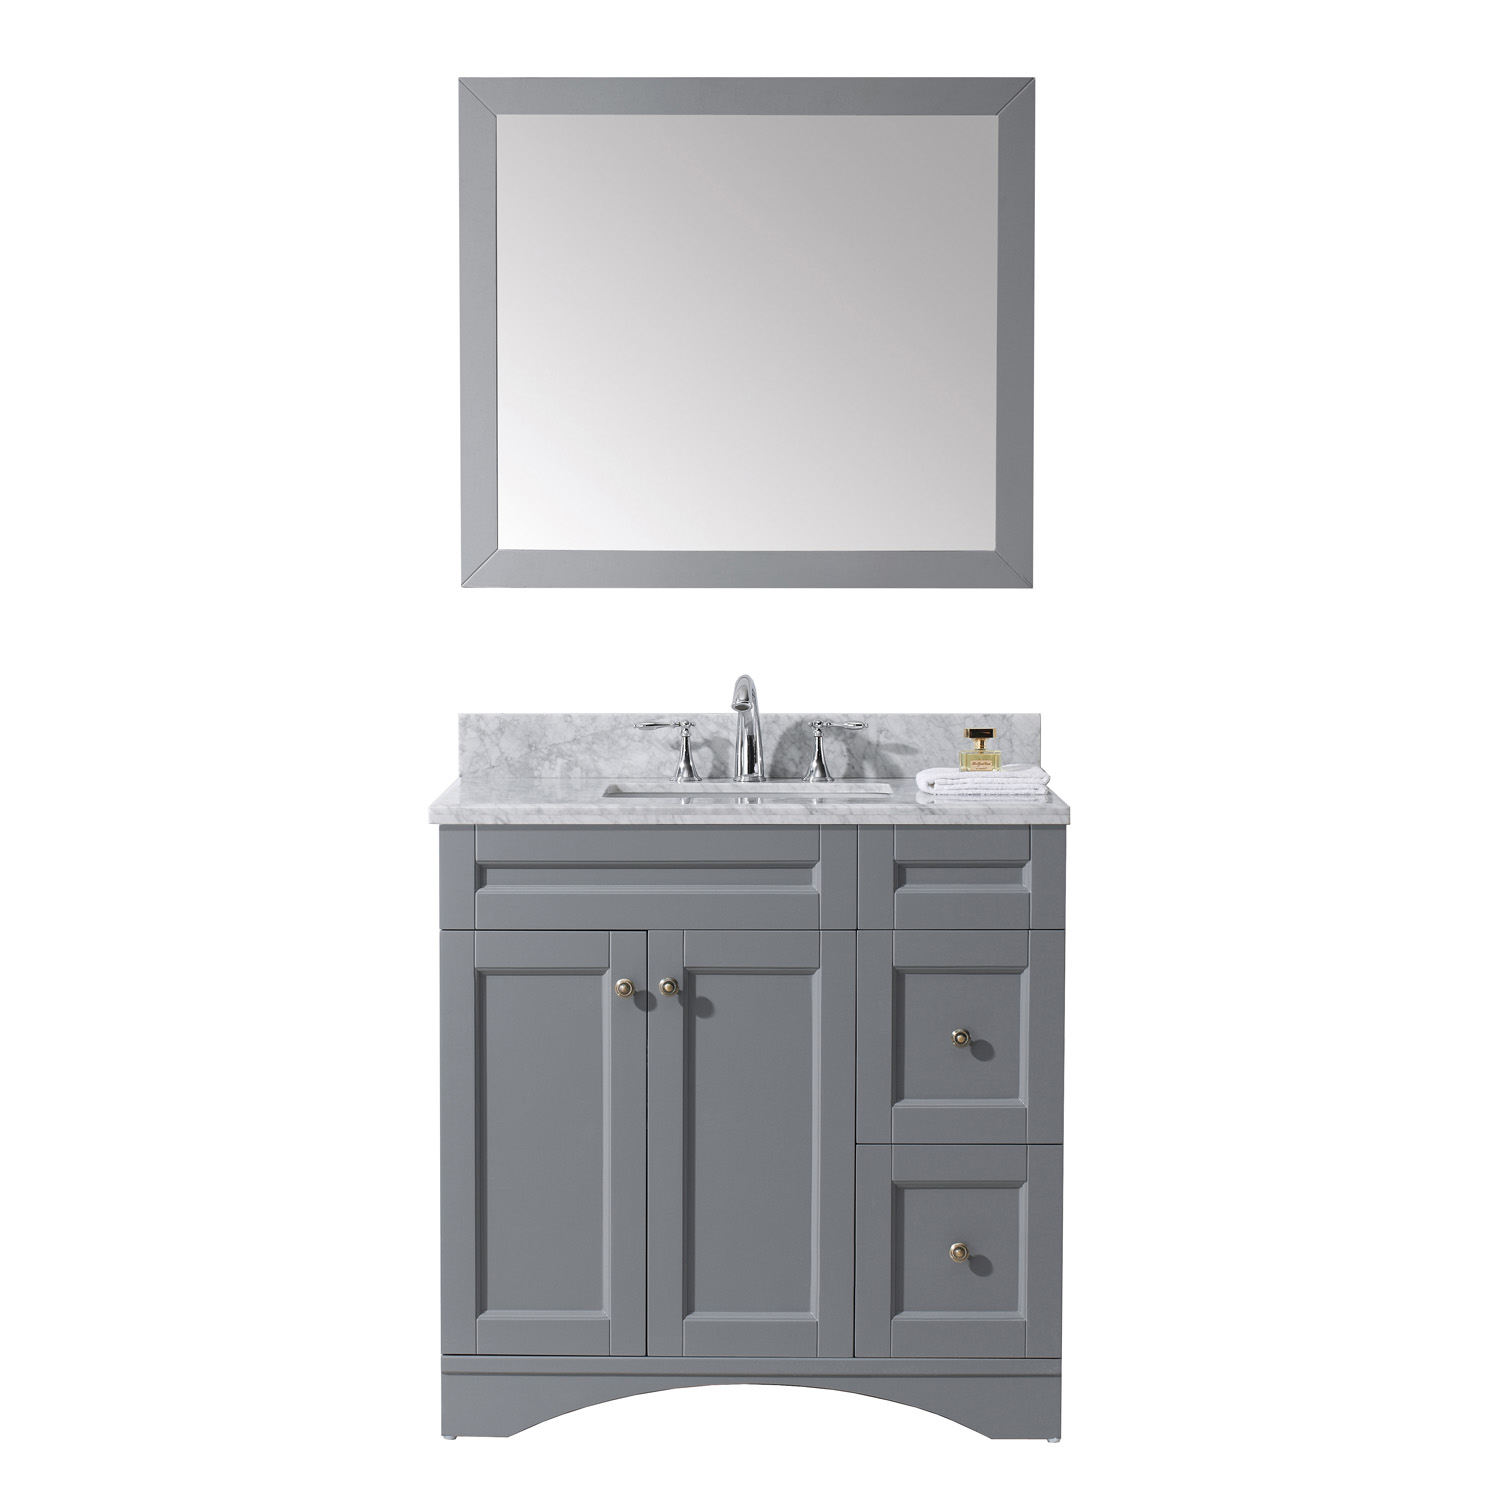 "36"" Single Bath Vanity in Grey Finish with Top, Sink and Mirror Options"